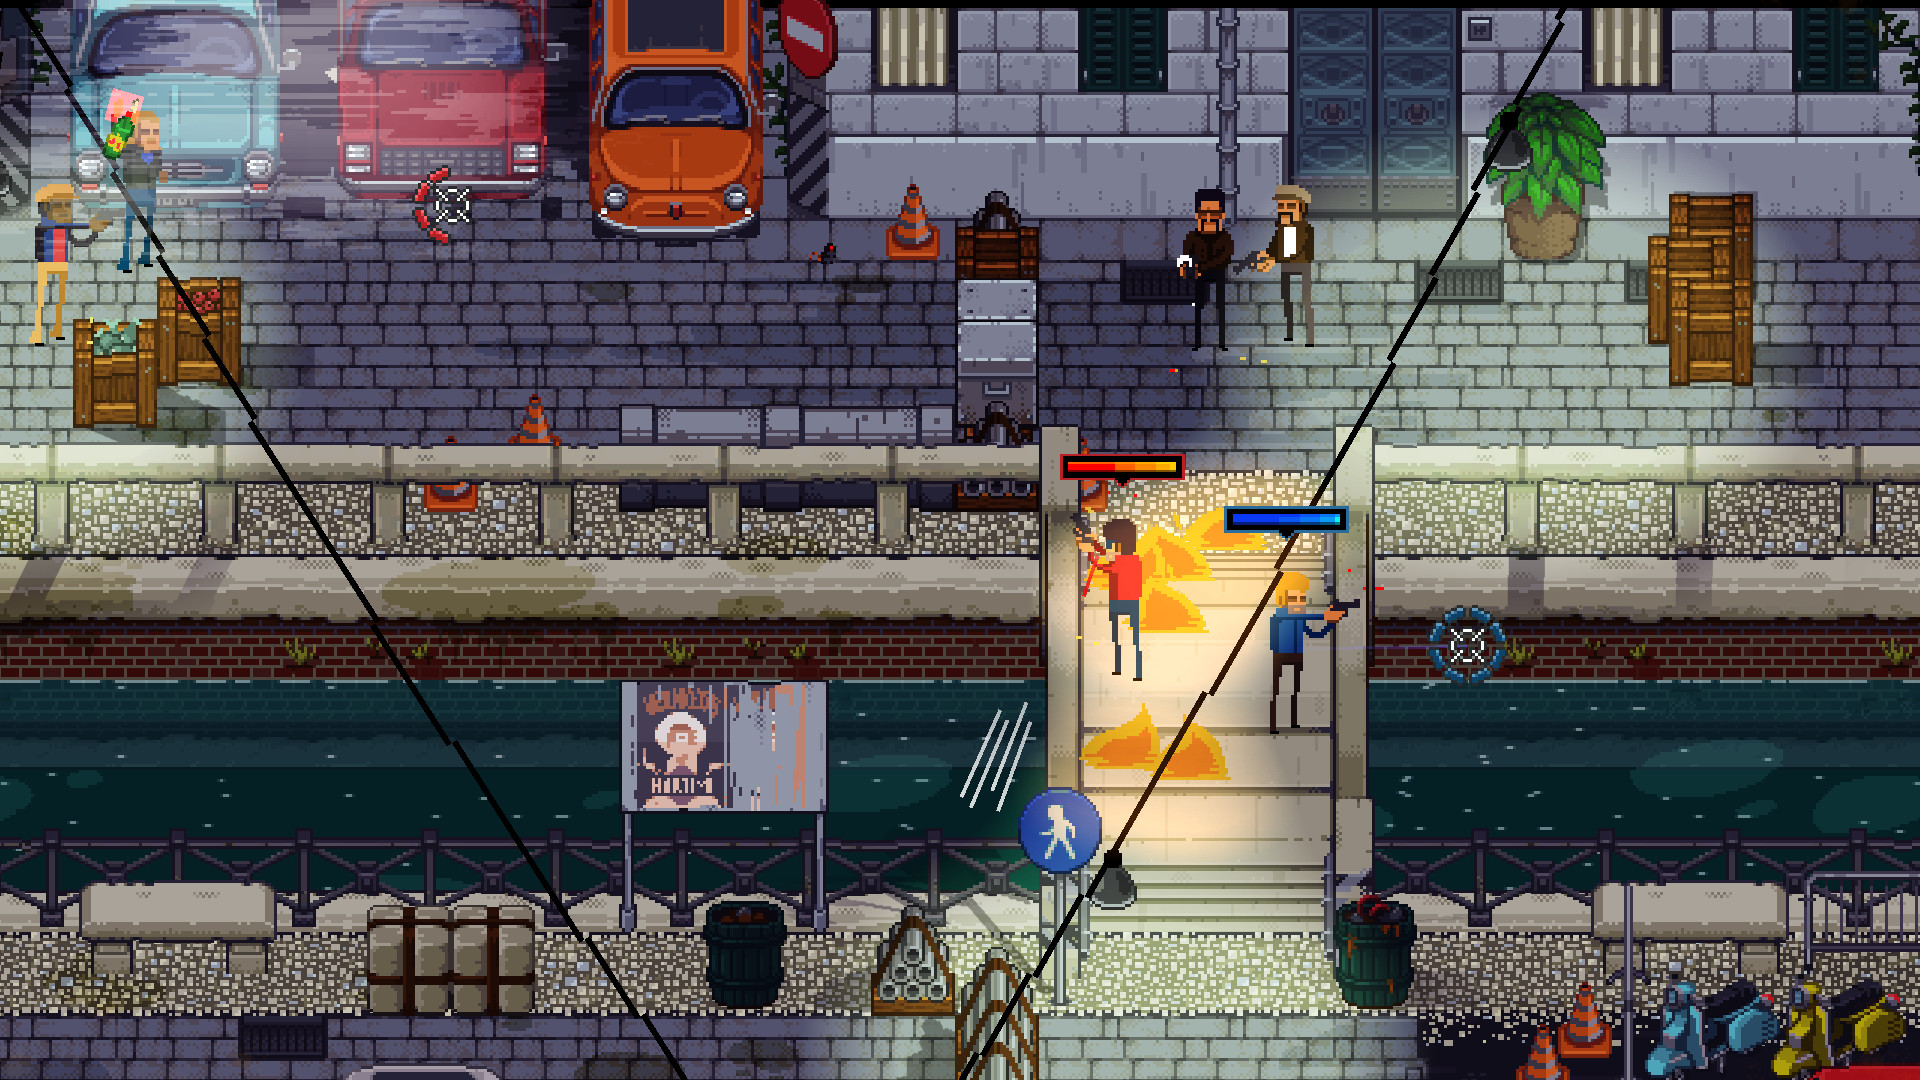 Milanoir is coming to Nintendo Switch this year